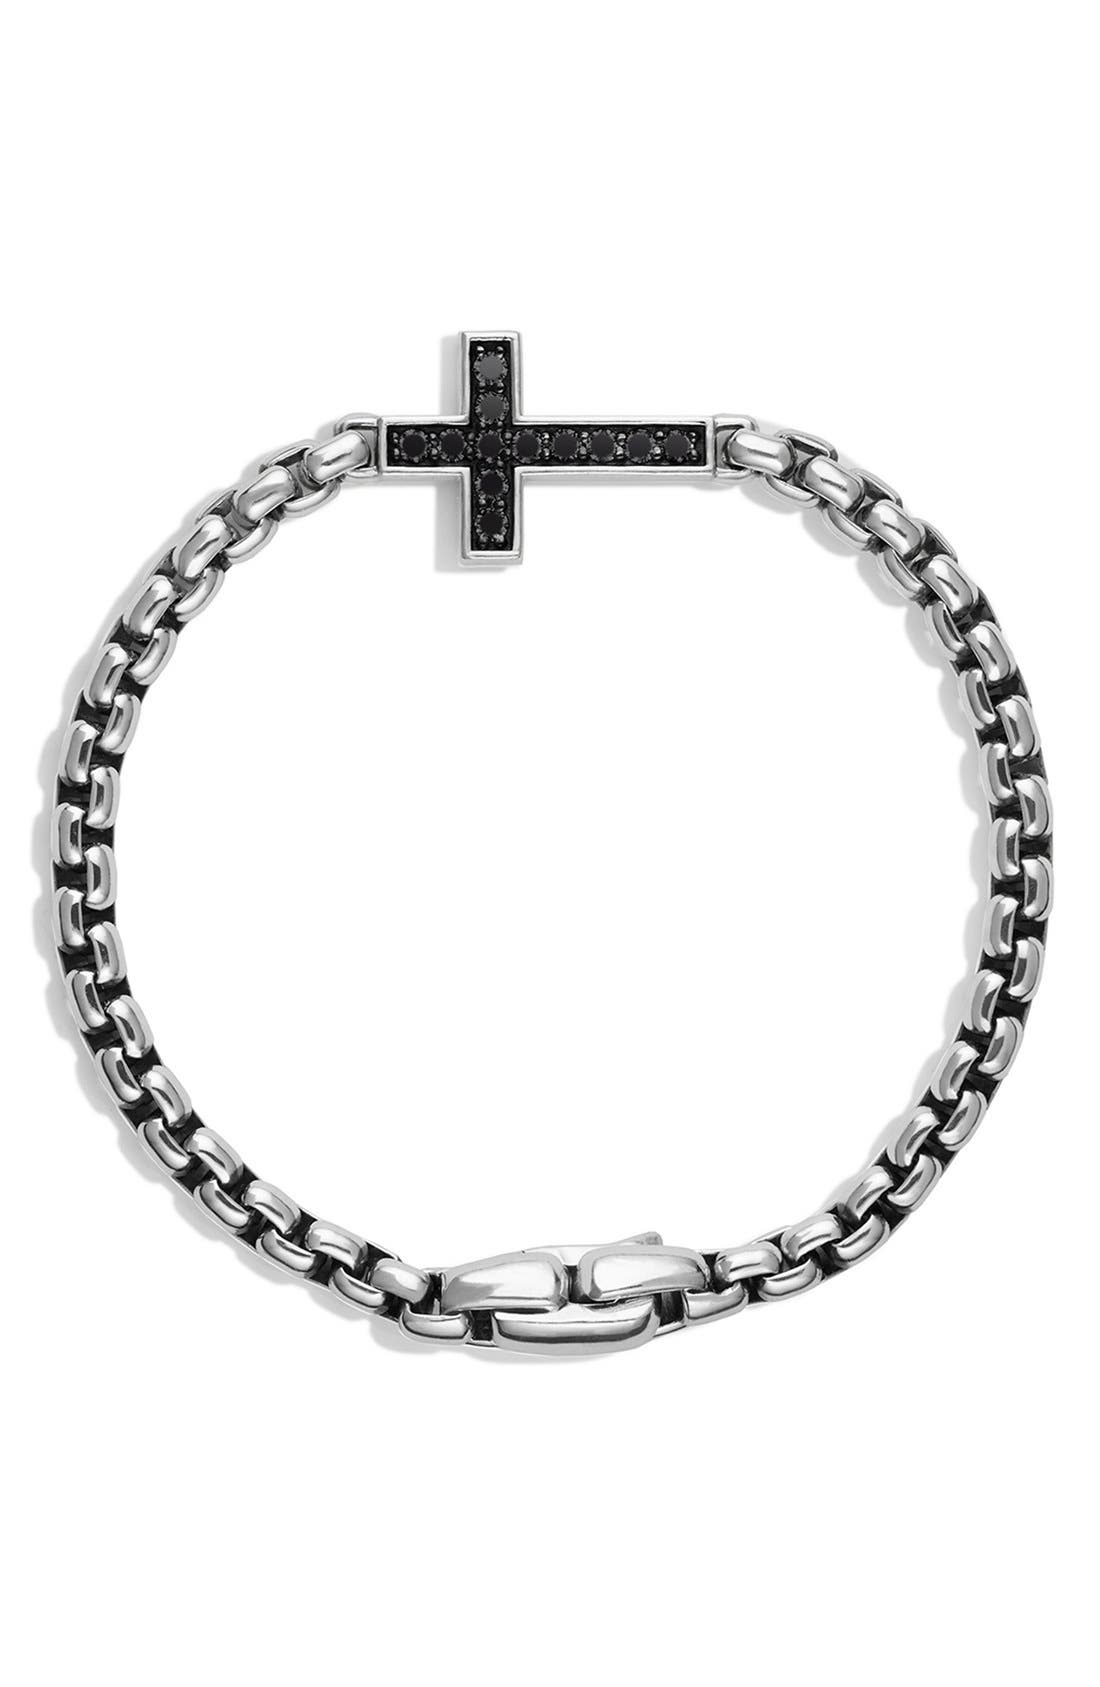 Pavé Black Diamond Cross Station Bracelet,                             Main thumbnail 1, color,                             Black Diamond